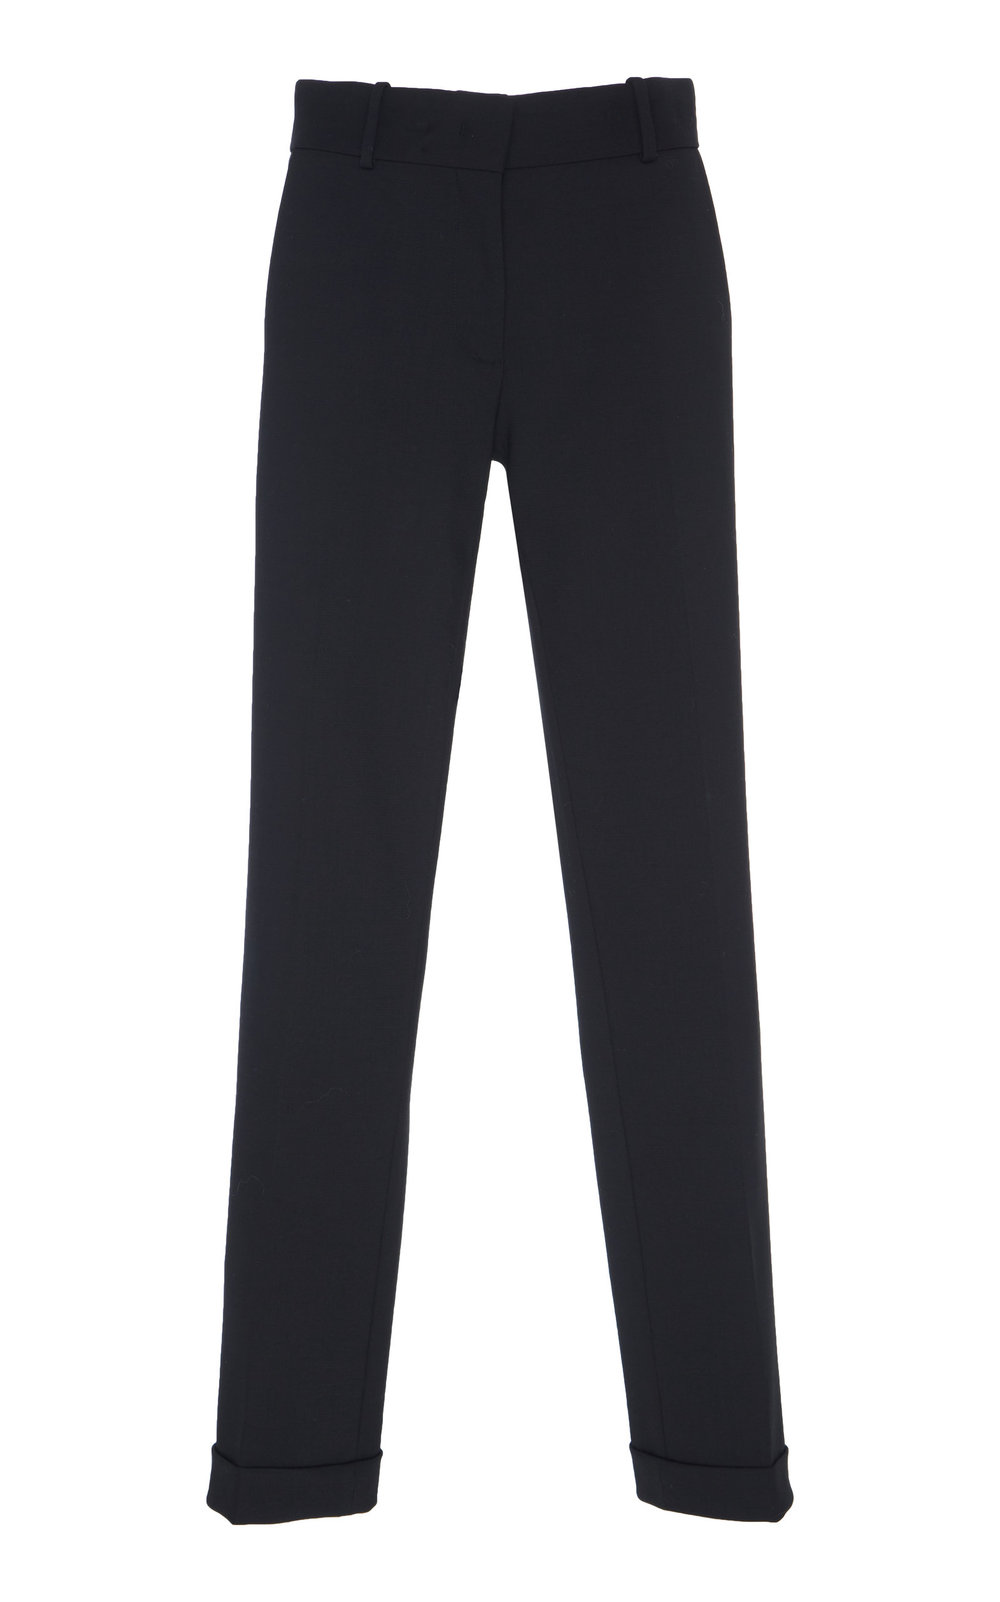 Erigeron Wool Pants - BLACK  Tailored in a narrow-leg silhouette, these pants feature sharp pressed creases. Made from a unique Wool blend, these pants are a wardrobe staple.